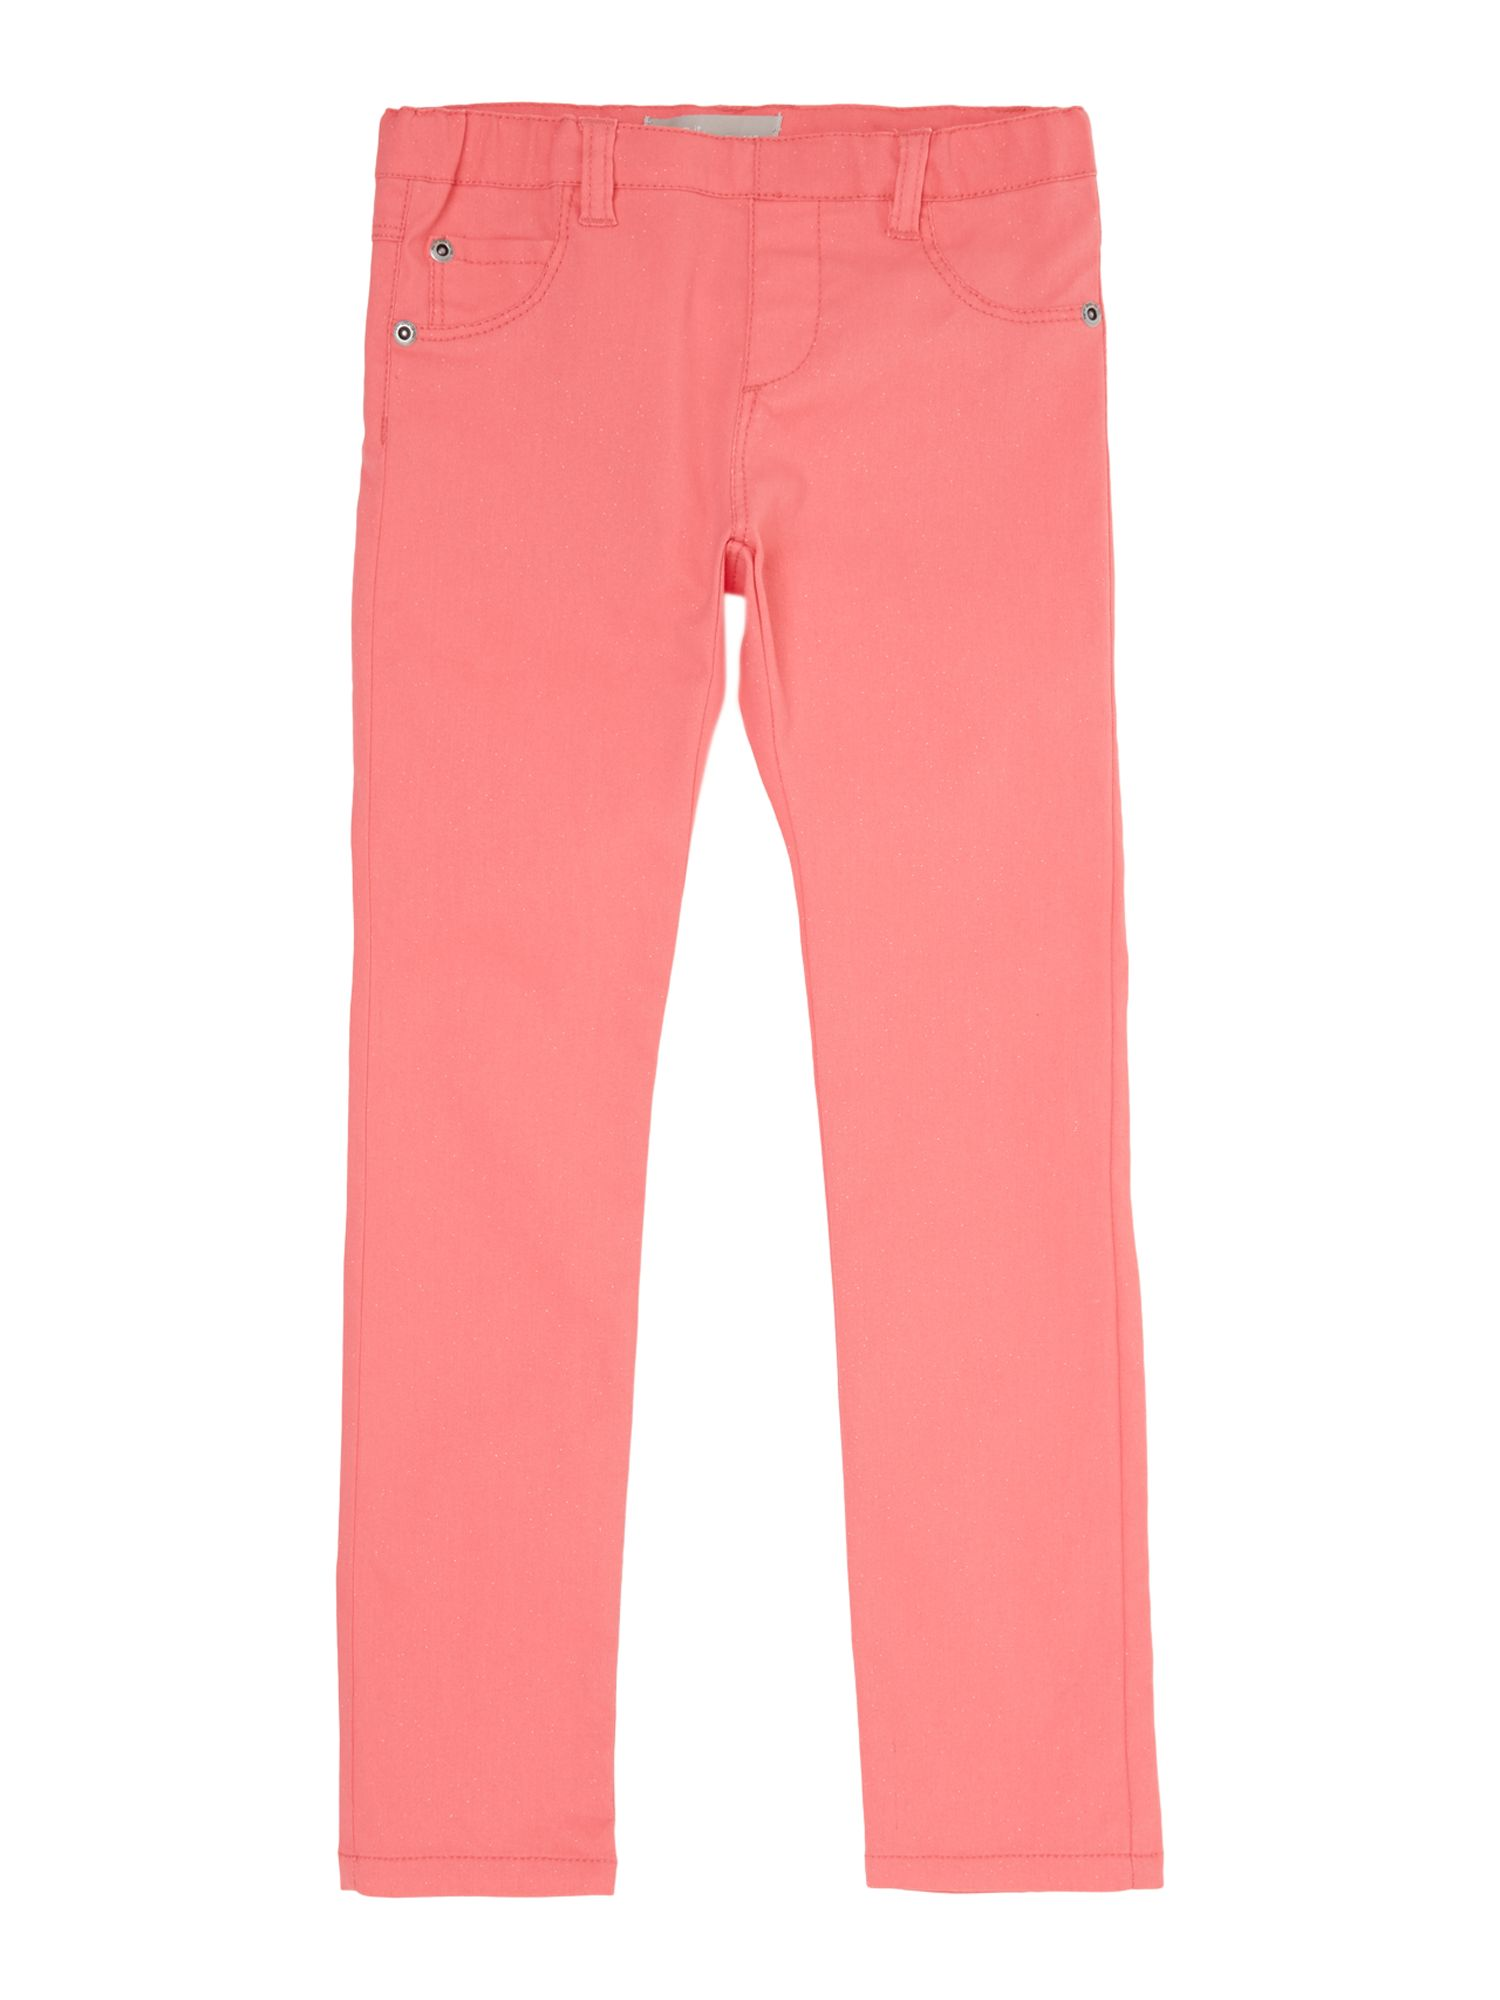 Girls sparkle lightweight trousers